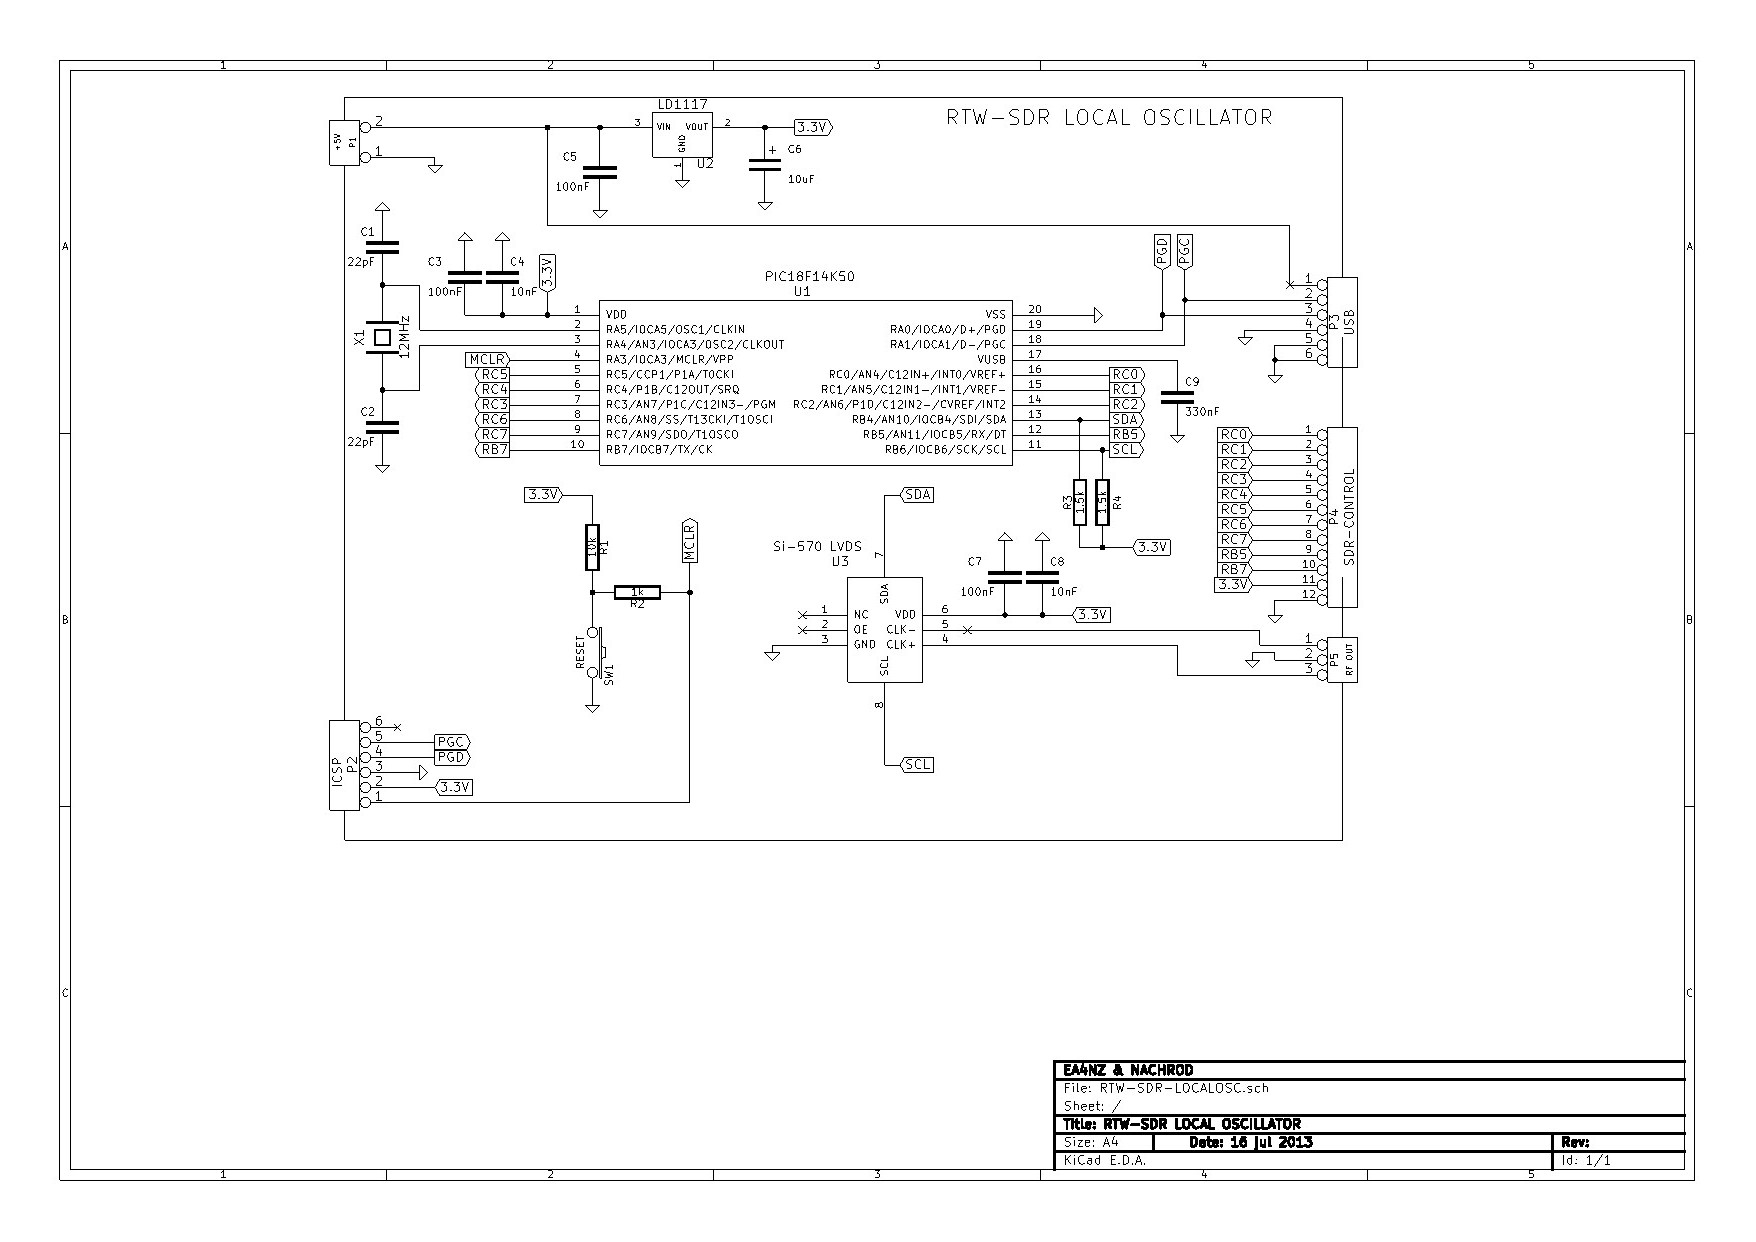 A Rotary Encoder Dial For The Rtw Sdr Localosc Board Find Usb Pic Programmer Schematic Diagram It Has Reset Button And Can Be Externally Programmed Through Icsp Connector I Use Pickit2 From Microchip Final Looks